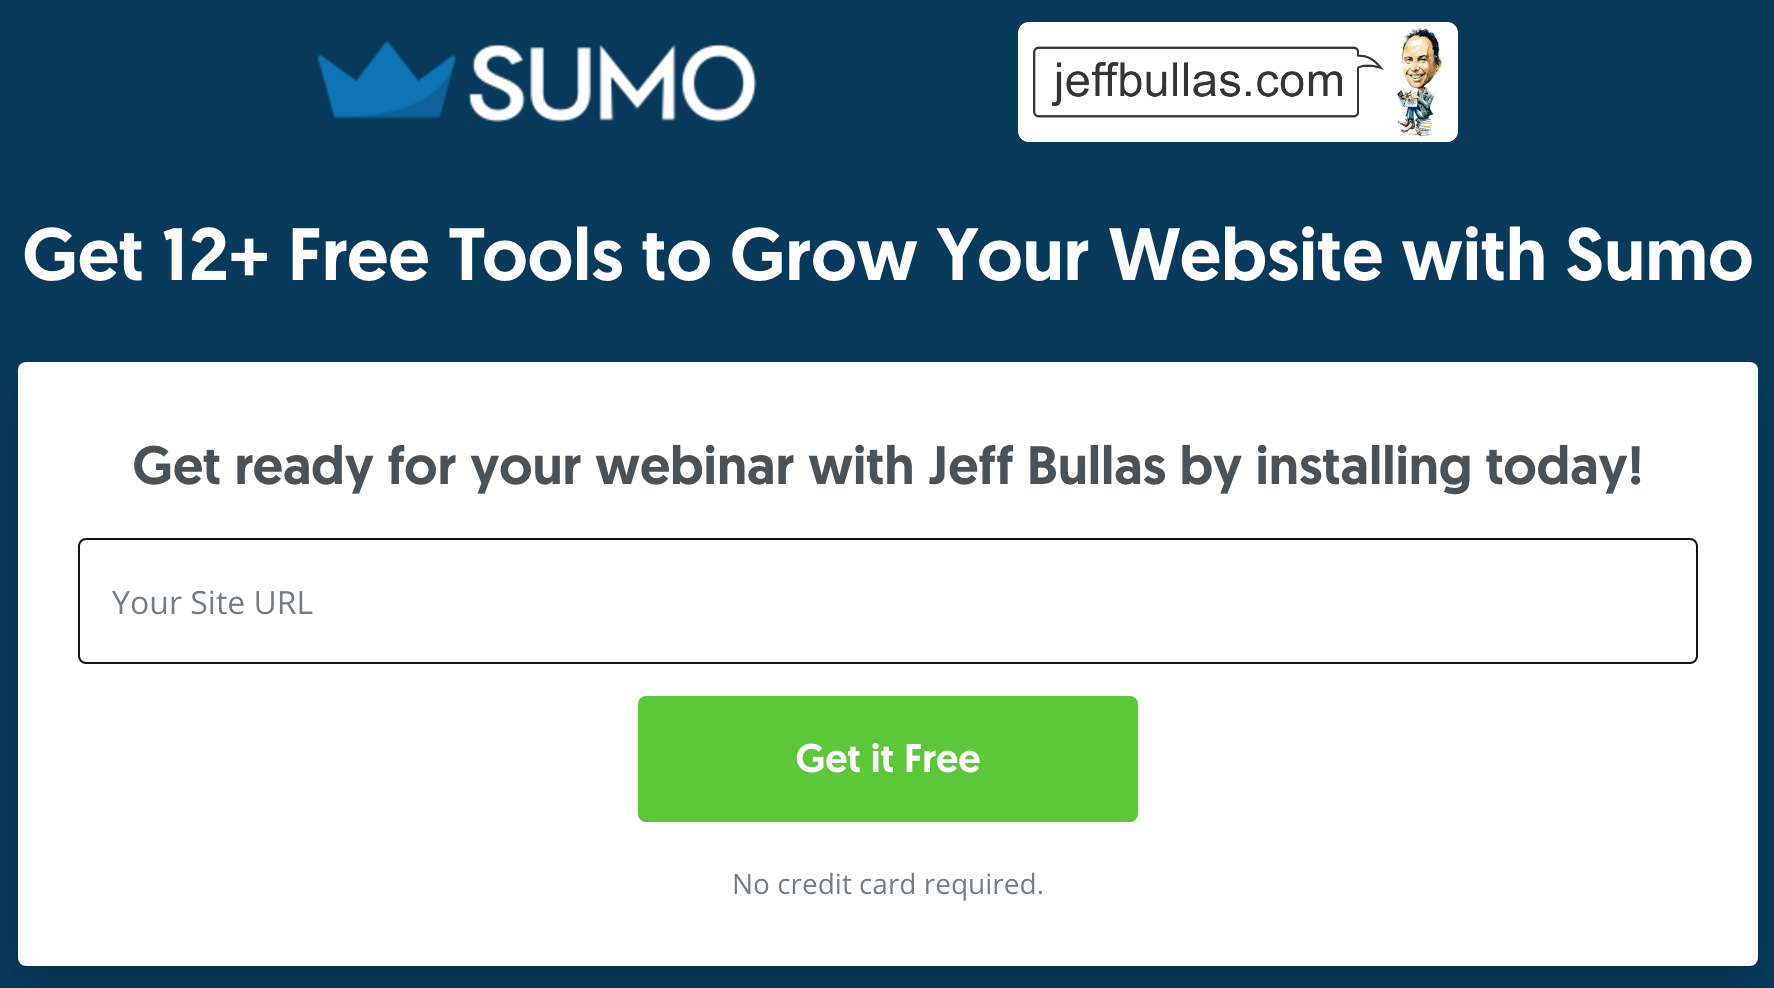 Screenshot showing a CTA on Sumo.com